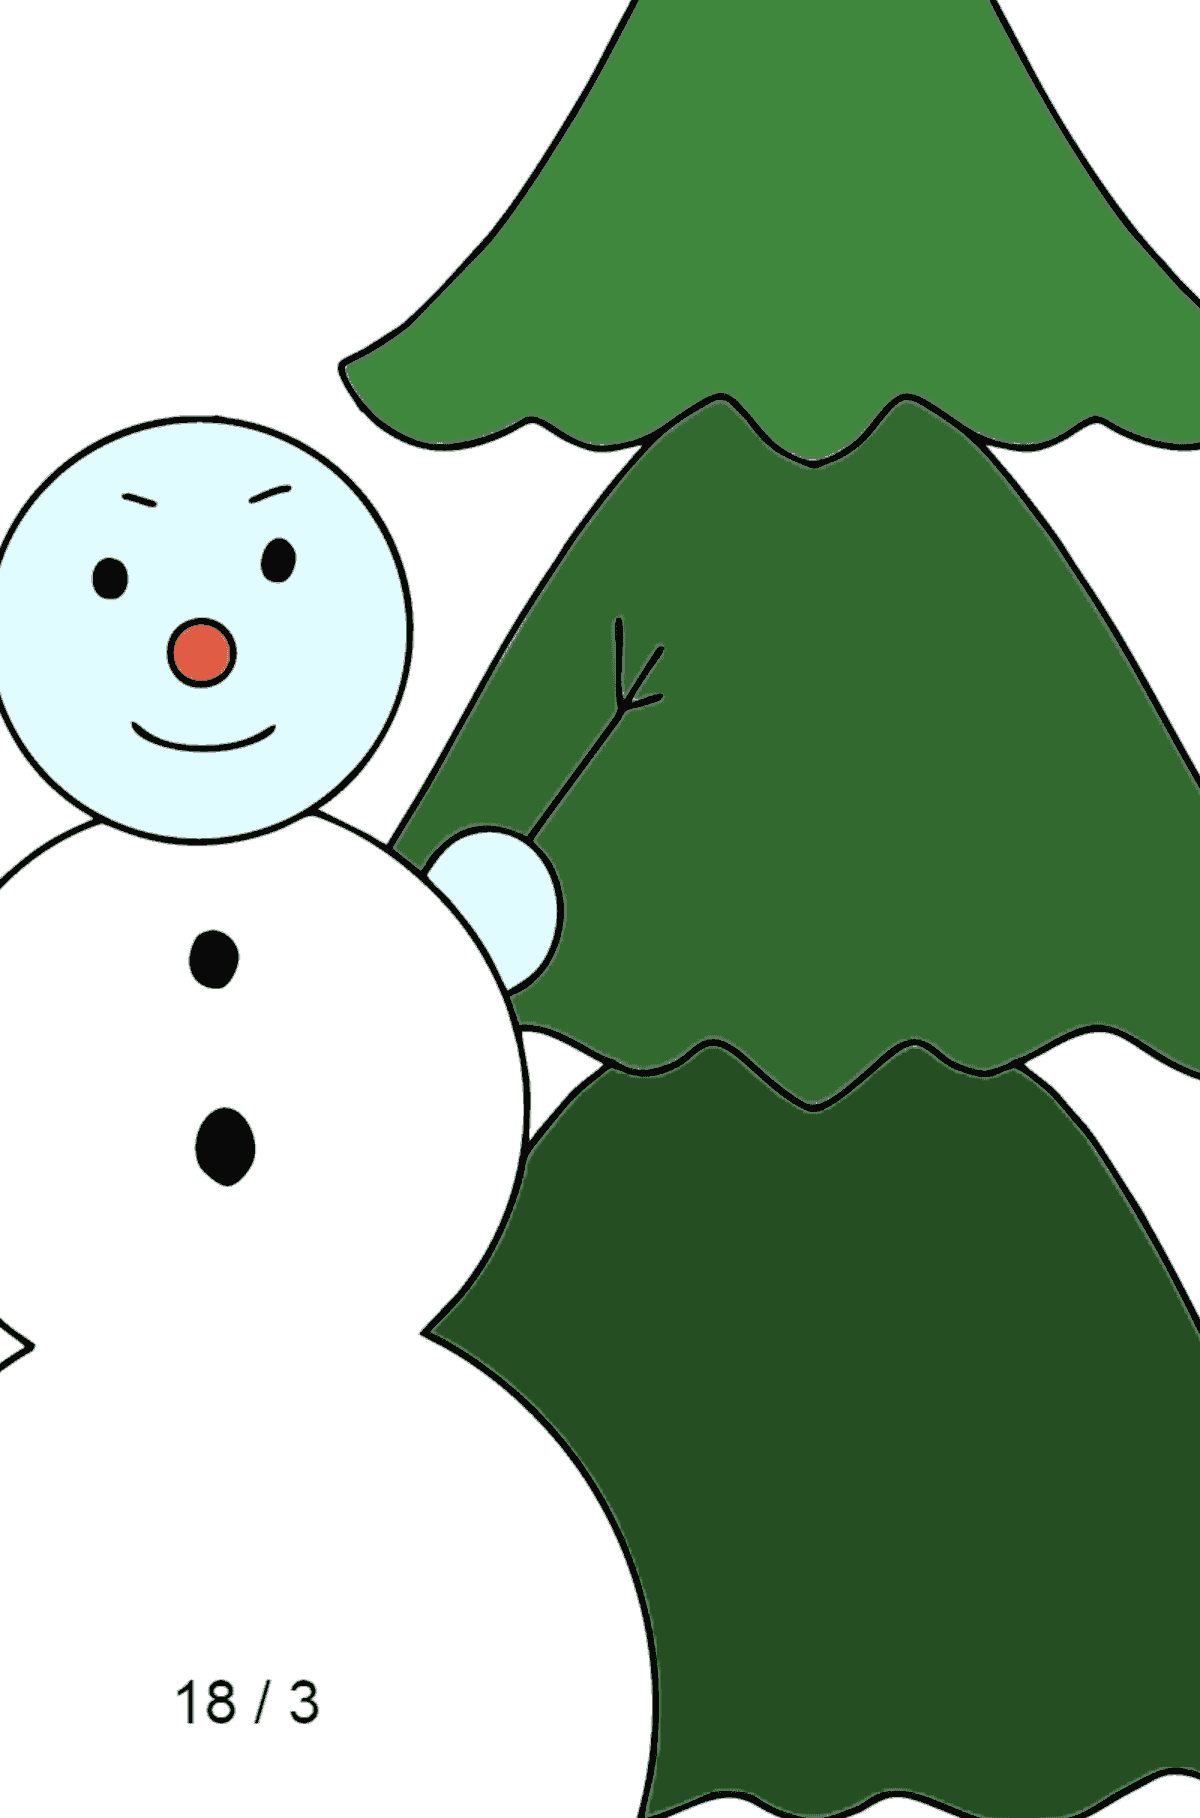 Winter Coloring Page - A Snowman with a Christmas Tree - Math Coloring - Division for Kids